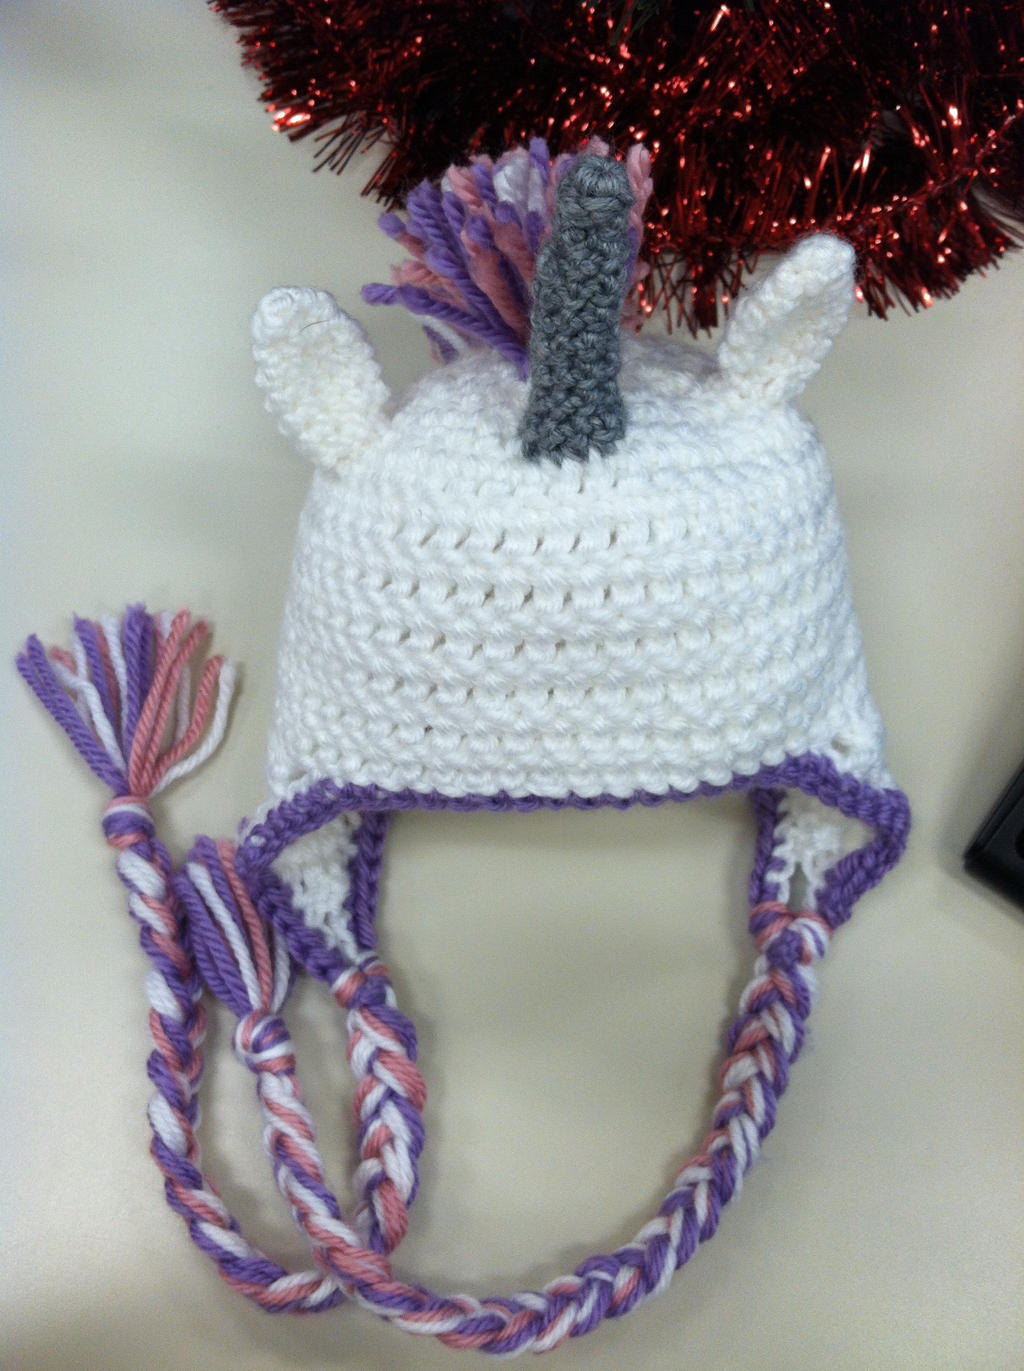 Crochet Pattern For A Unicorn Hat : Unicorn Baby Hat - crochet by NerdStitch on deviantART